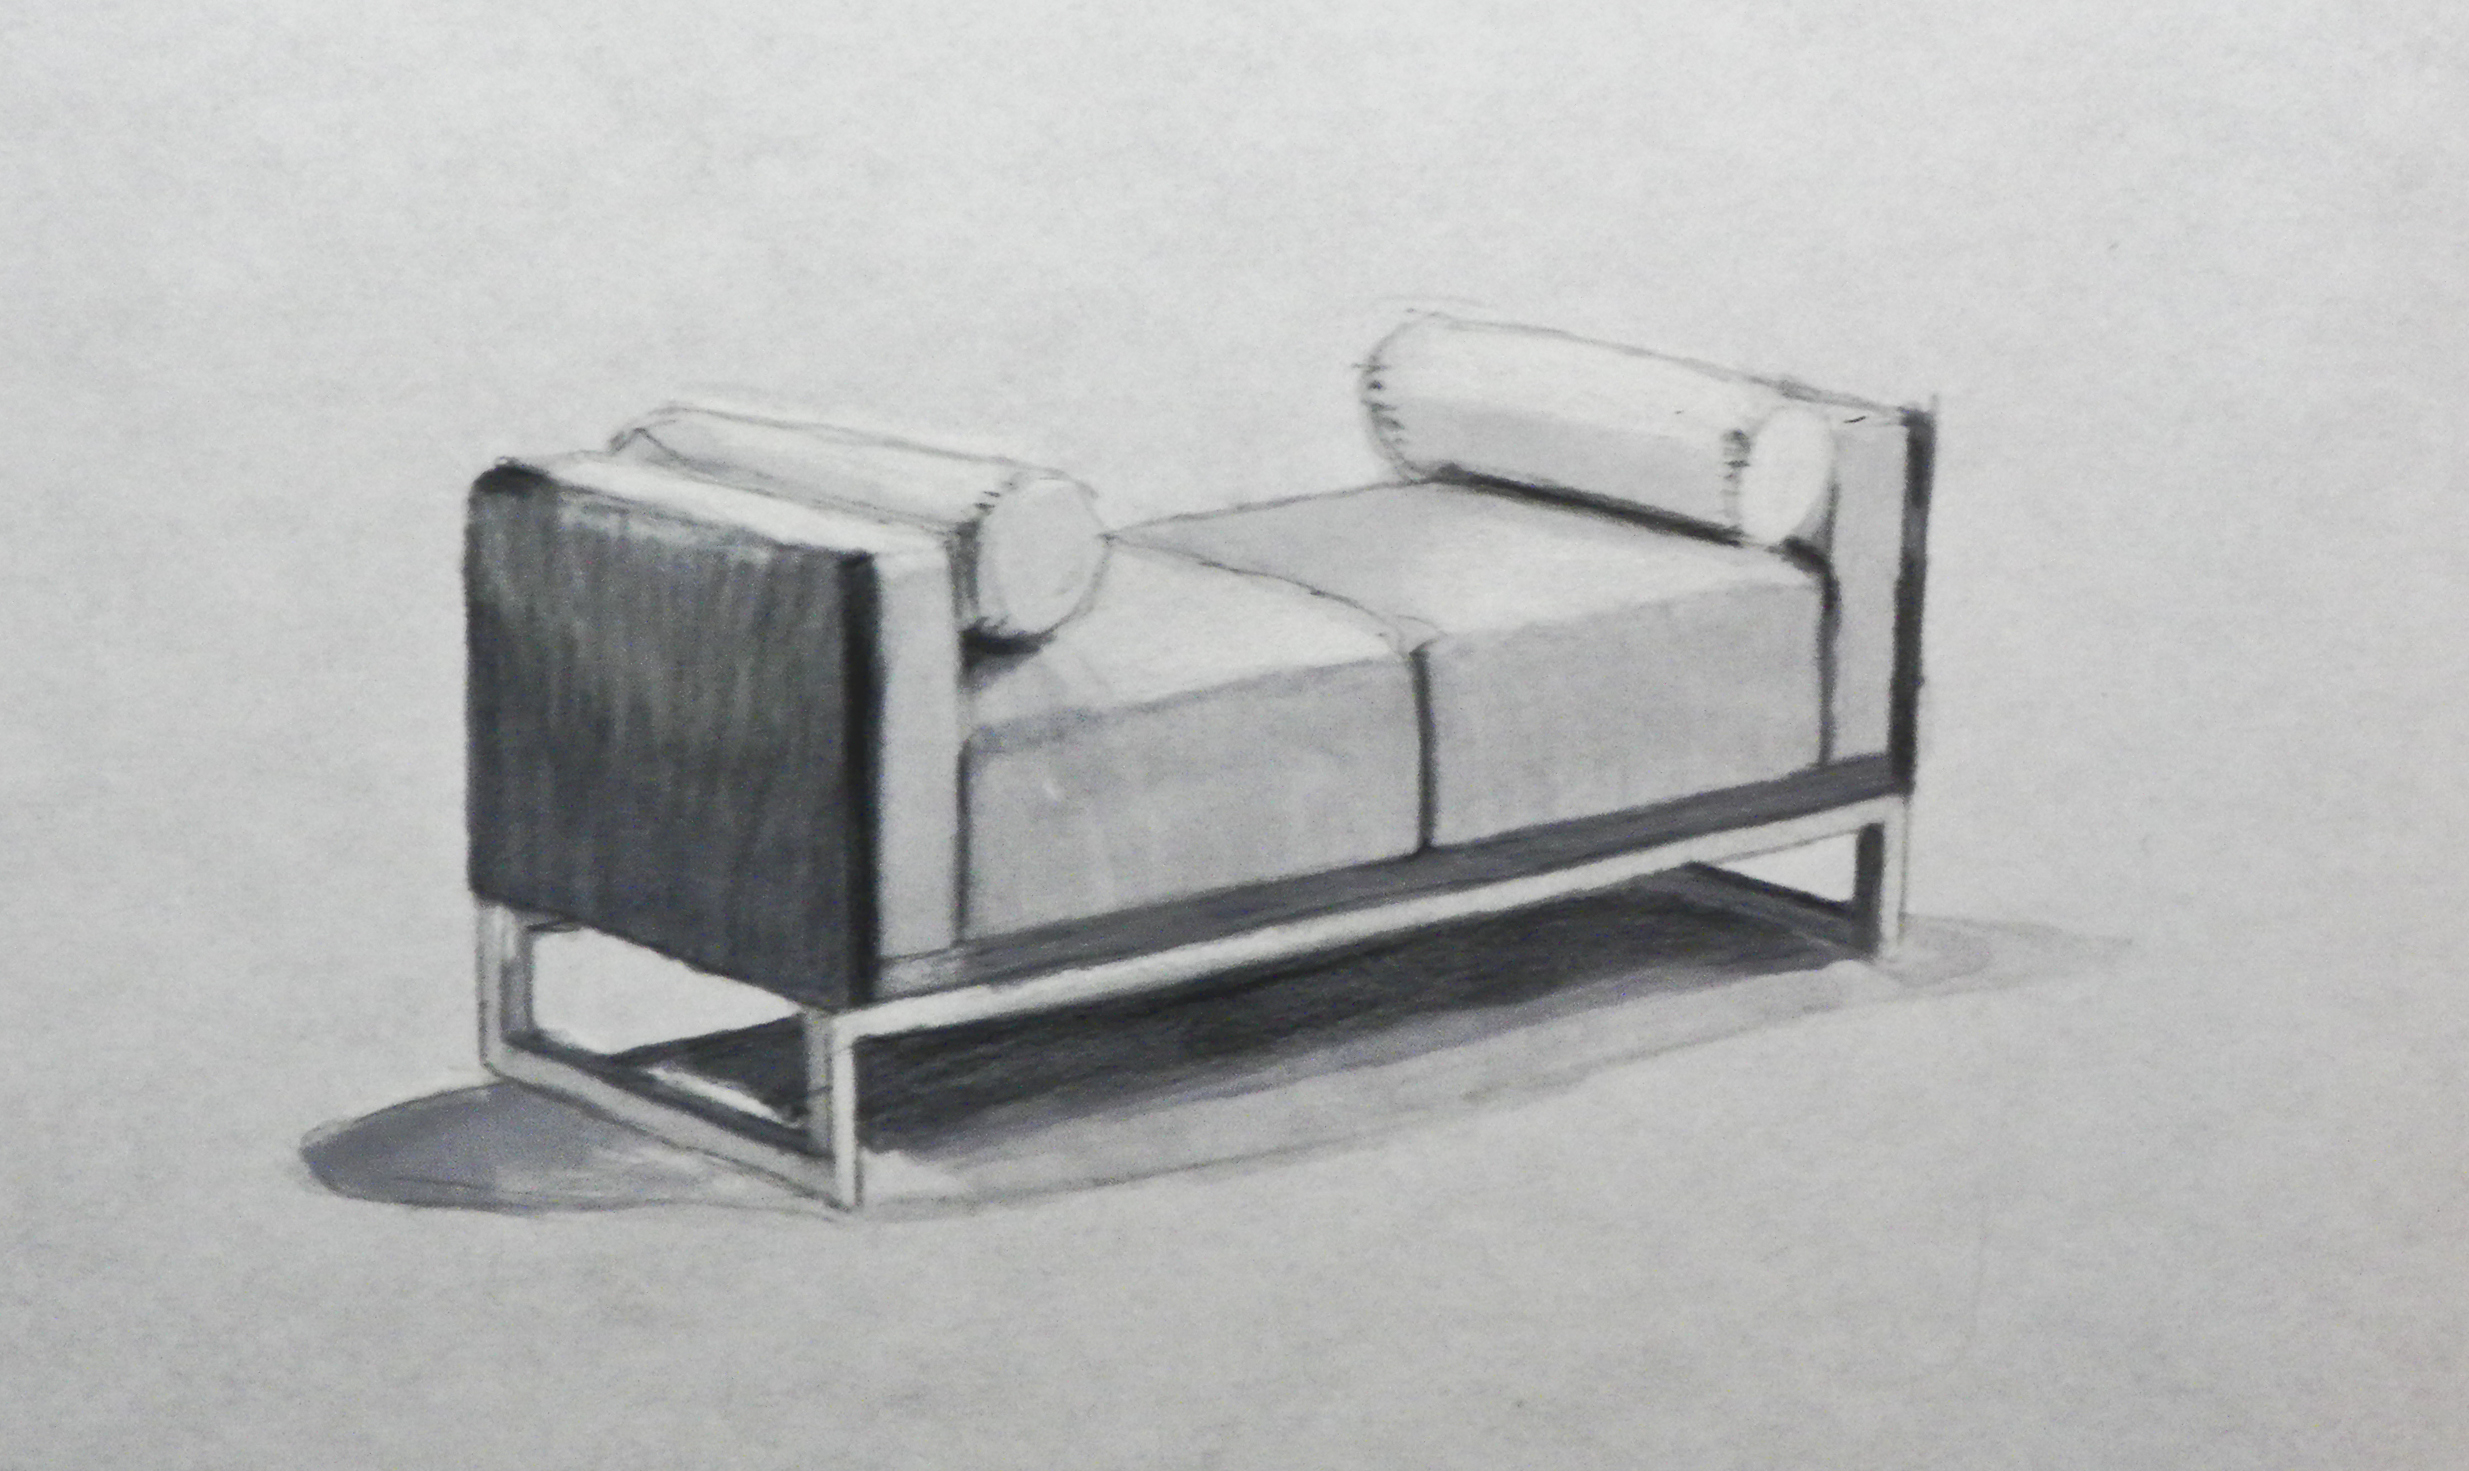 Furniture Sketches Furniture Sketches Stratton Design Studio